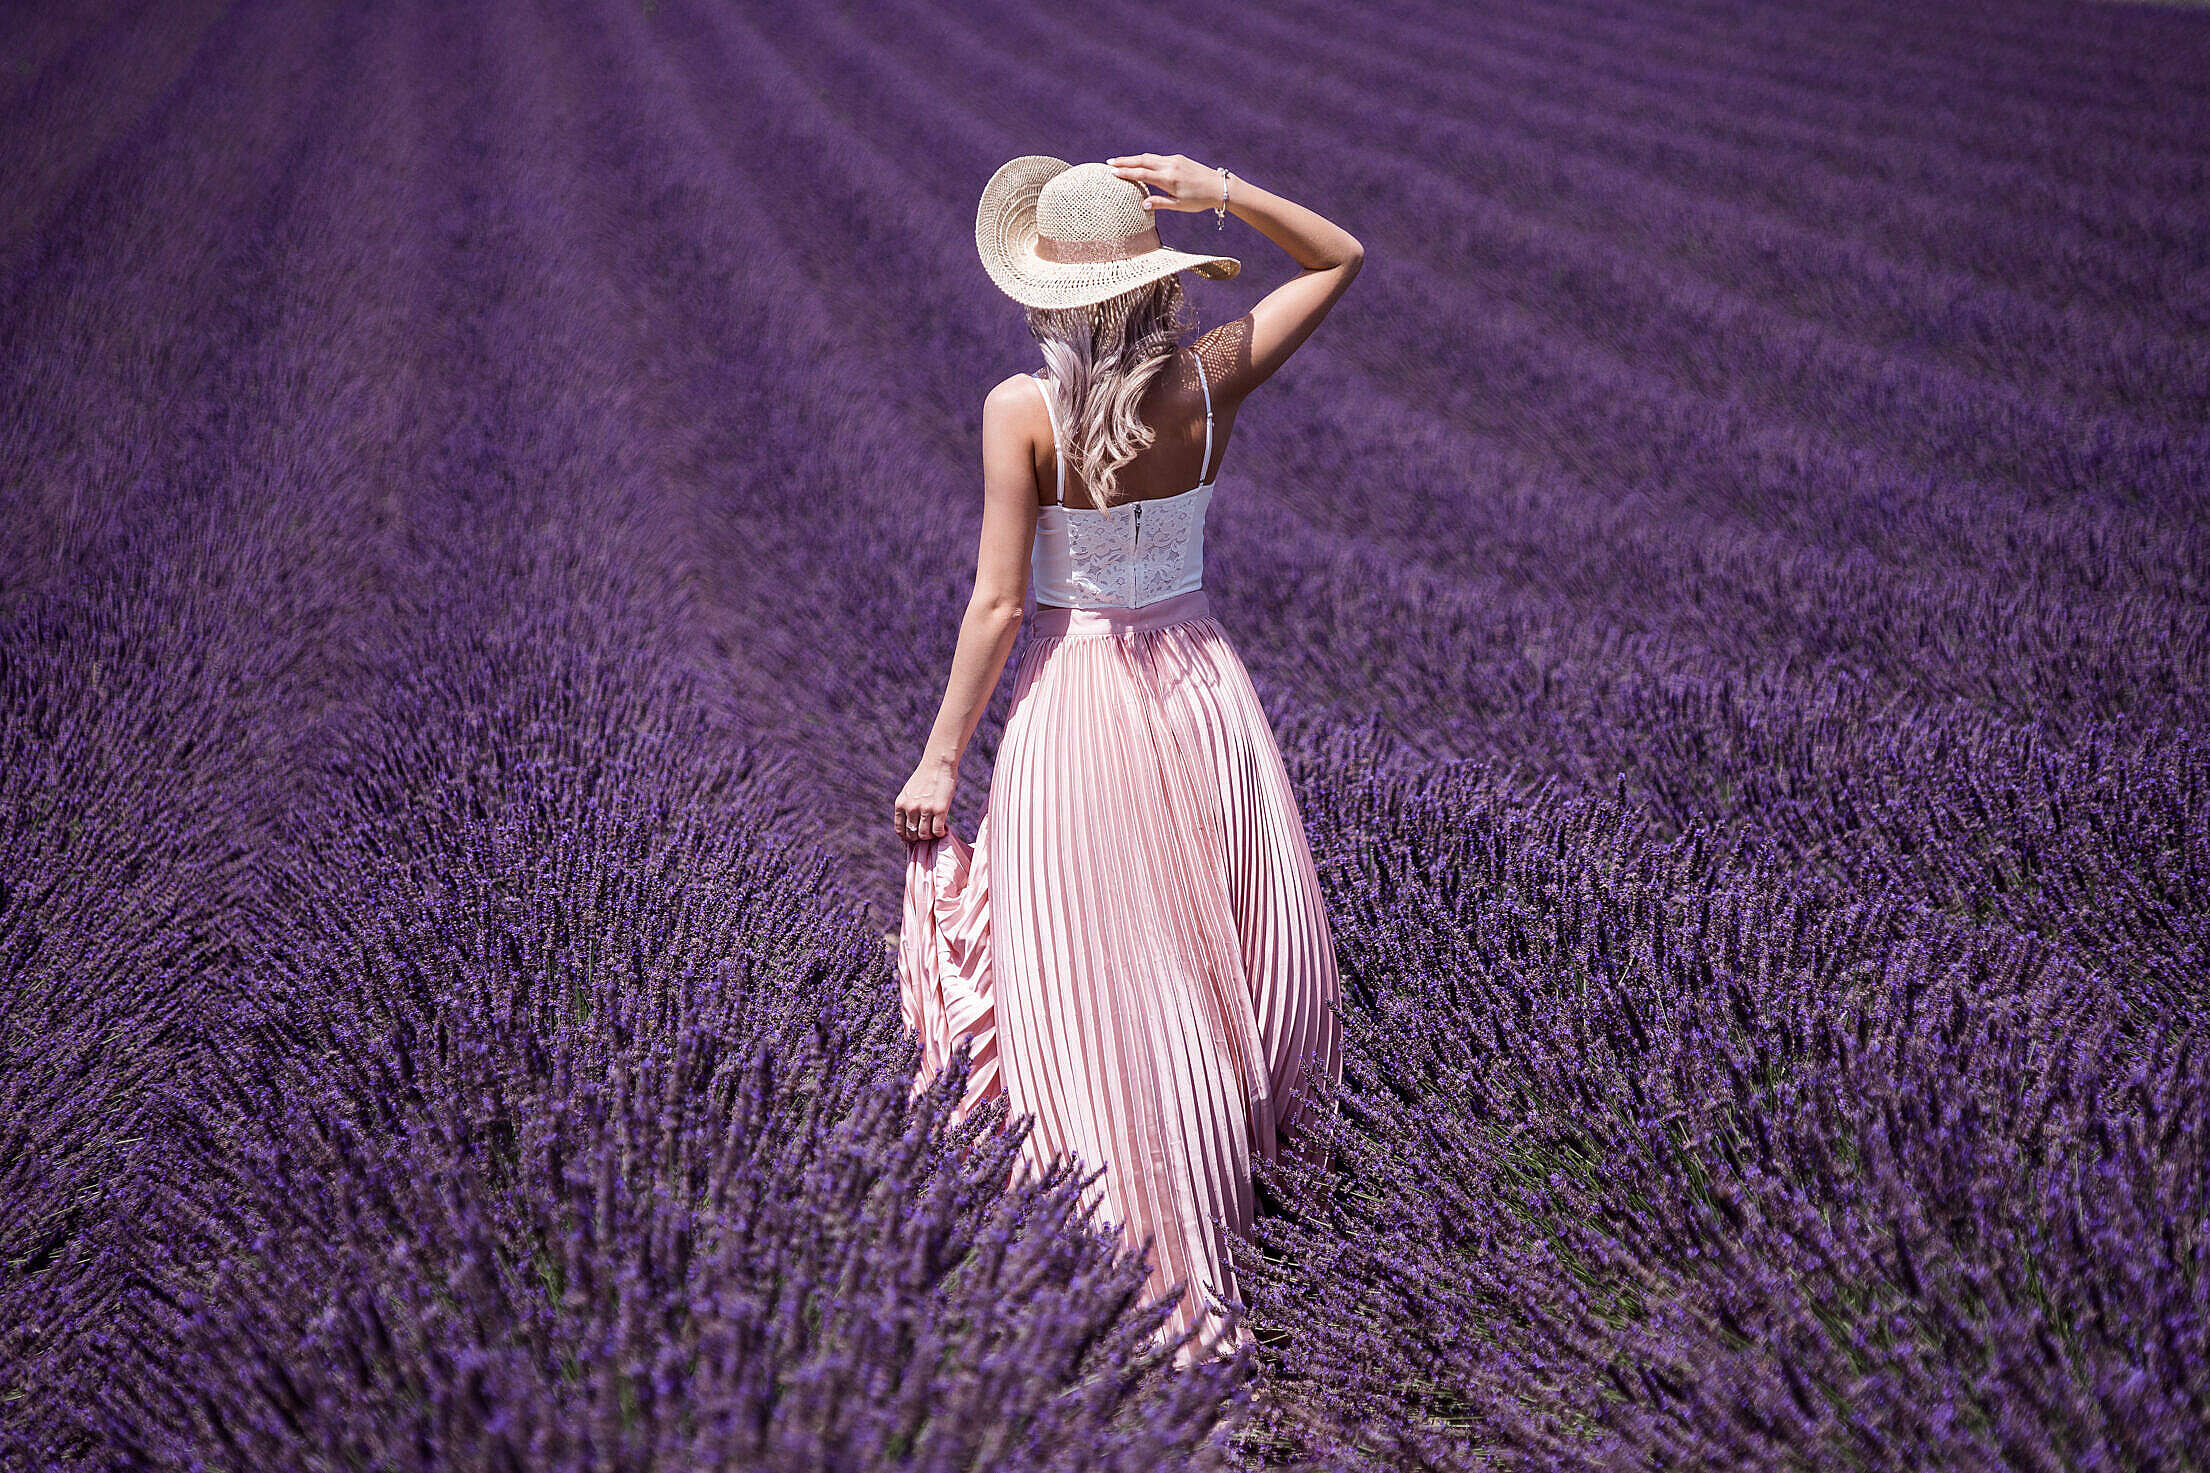 Beautiful Lady in Lavender Field Free Stock Photo